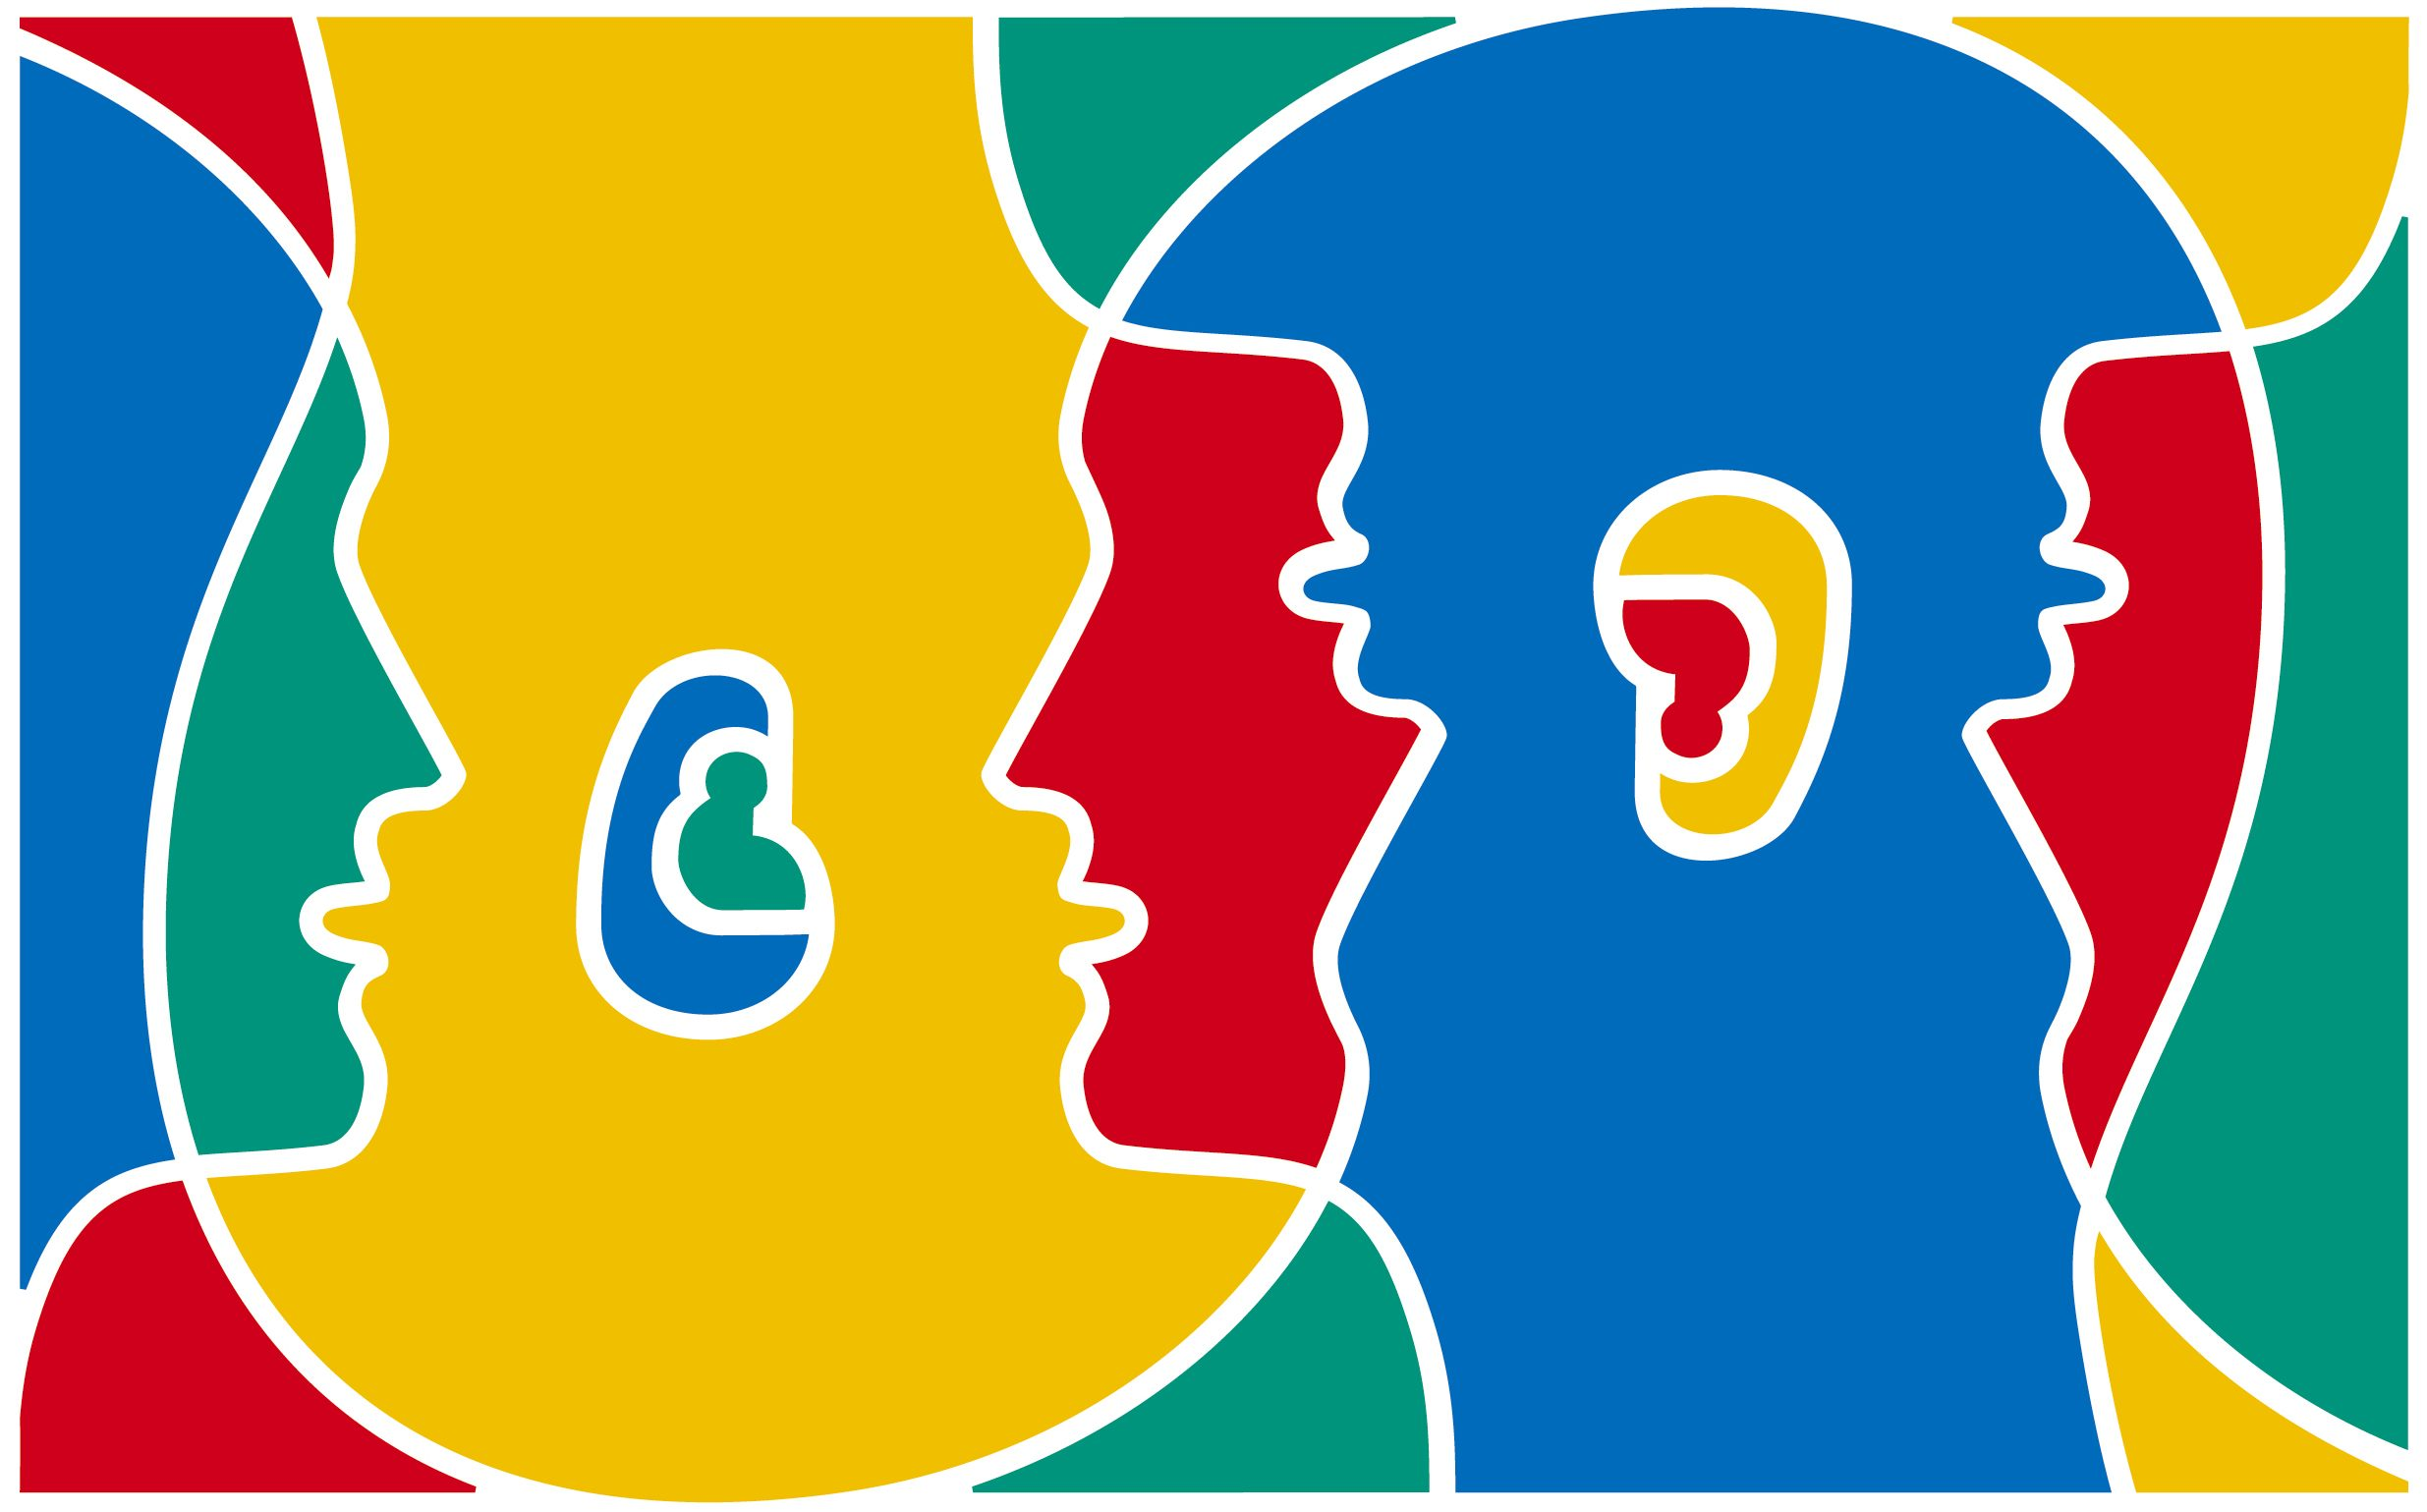 How to deal with a new language when you just moved